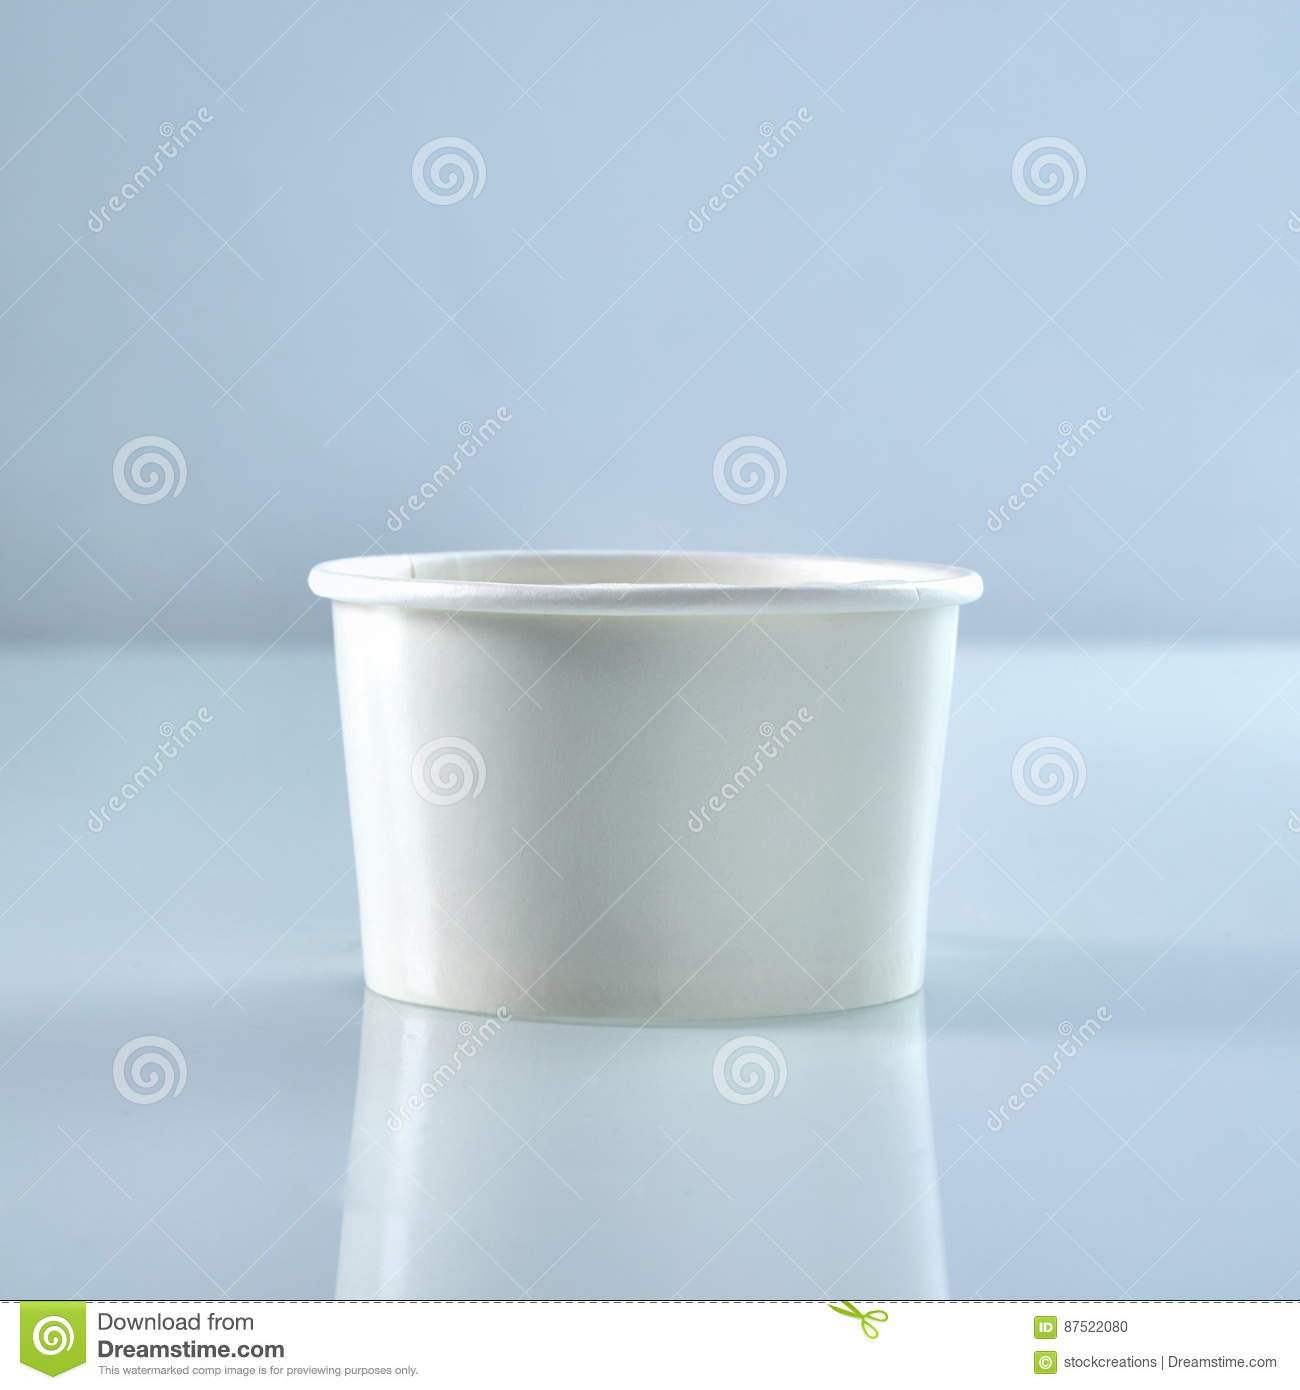 Blank White Disposable Food Tub Stock Photo - Image of reflection ...